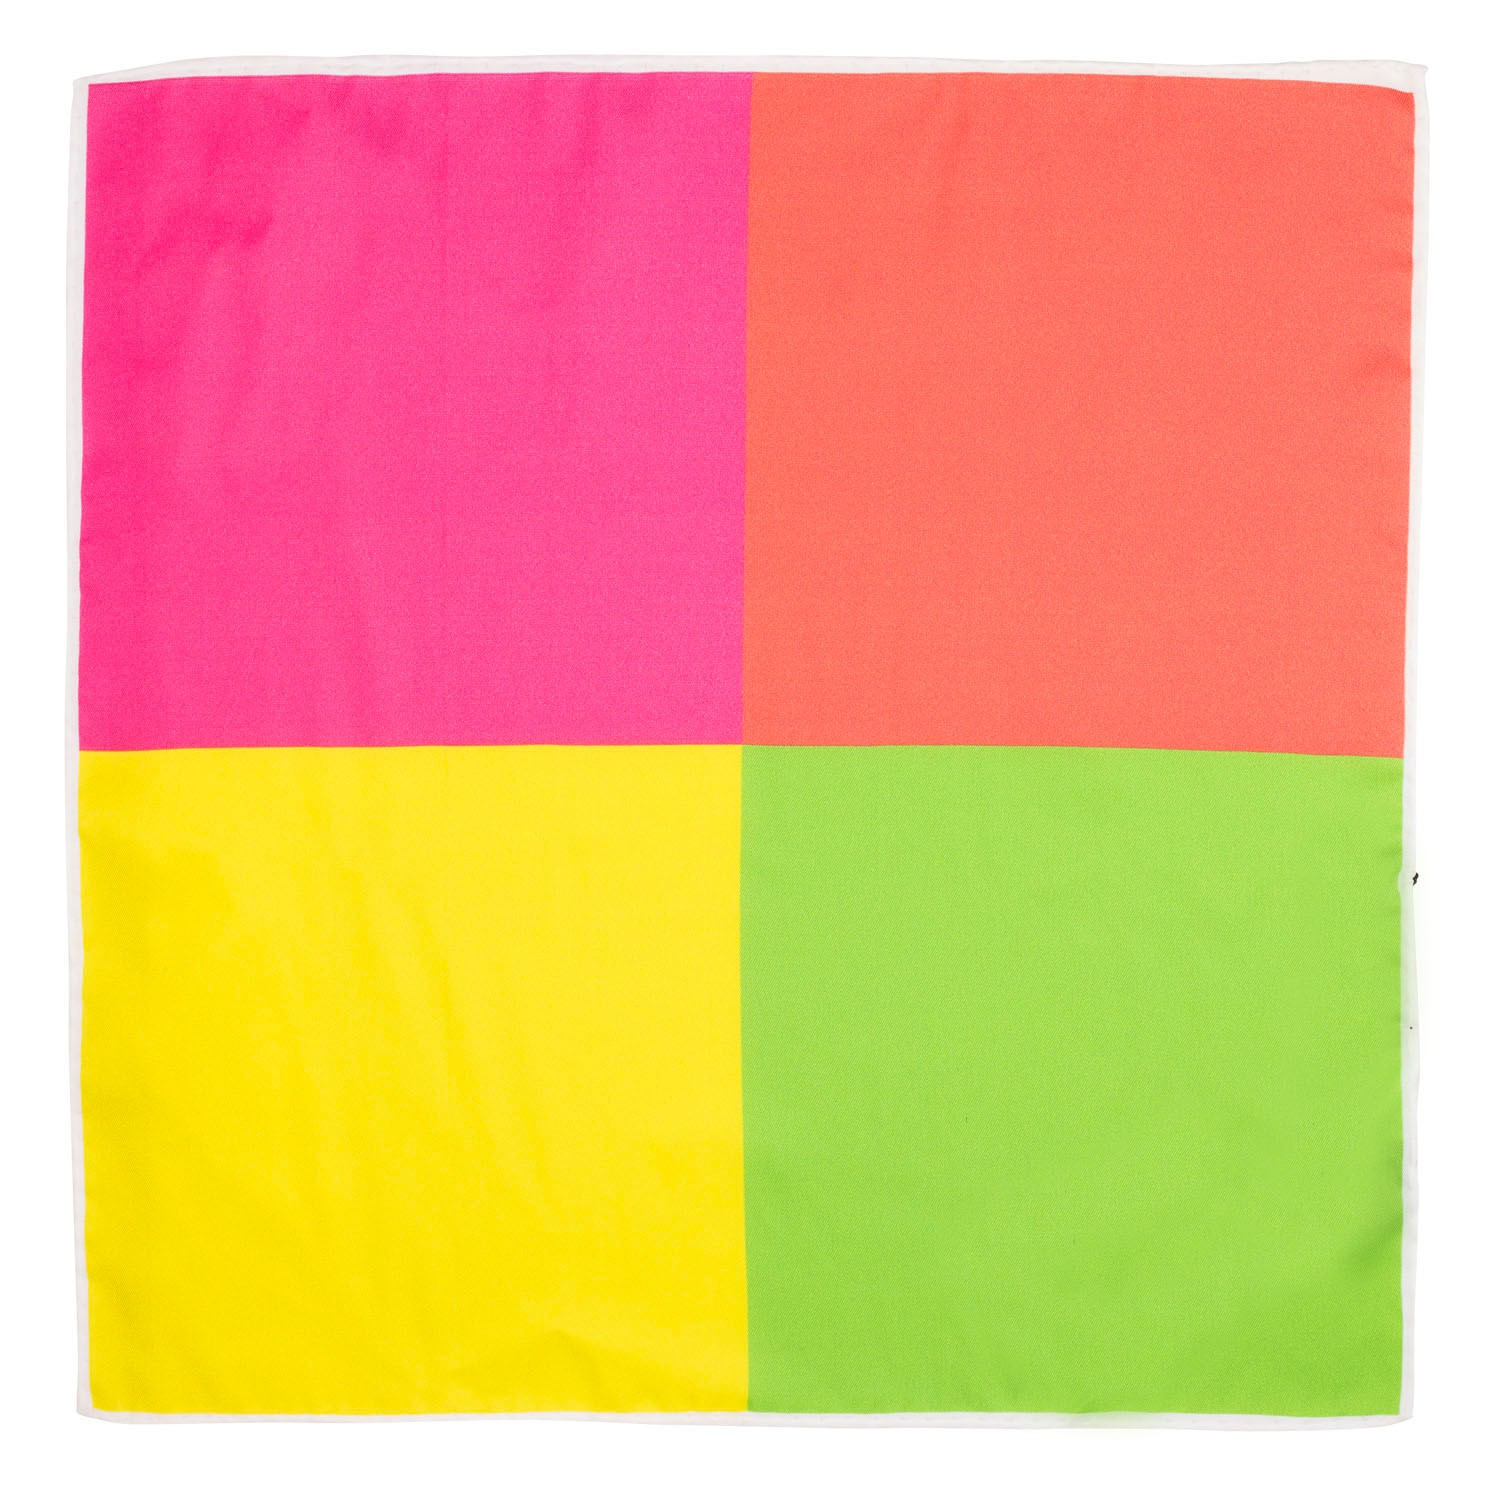 Four Square Solid Fluorescent colors Silk Pocket Square For Men By The Tie Hub